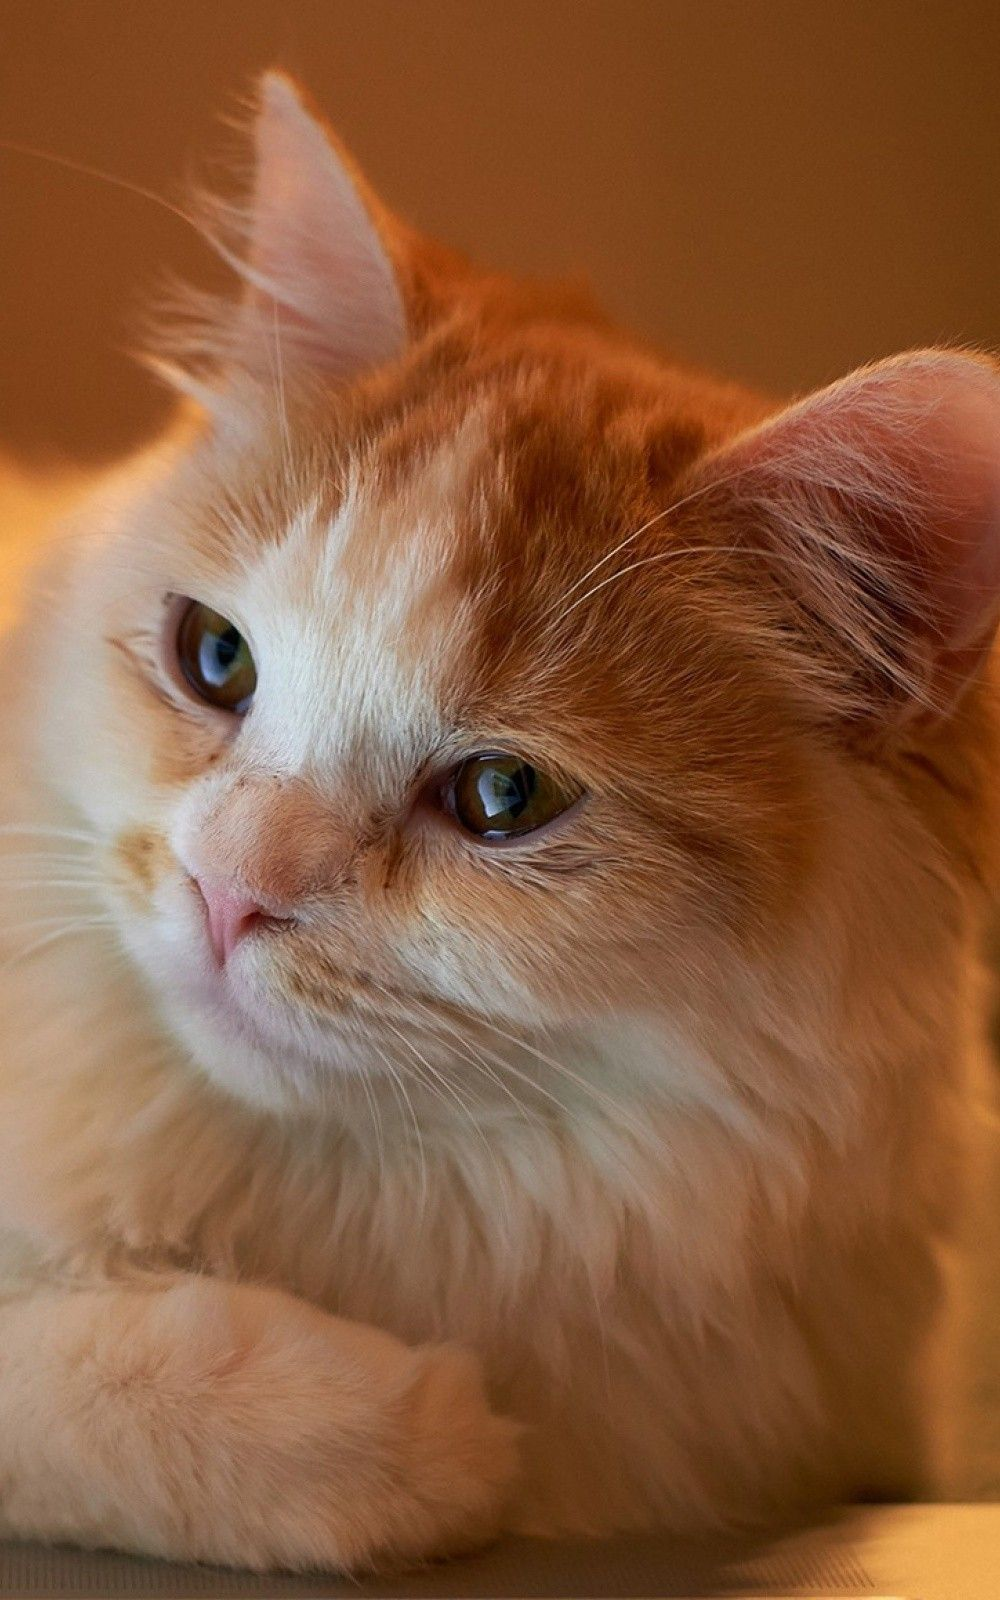 Animals Iphone 6 Plus Wallpapers Orange Fluffy Cat Iphone 6 Plus Hd Wallpaper